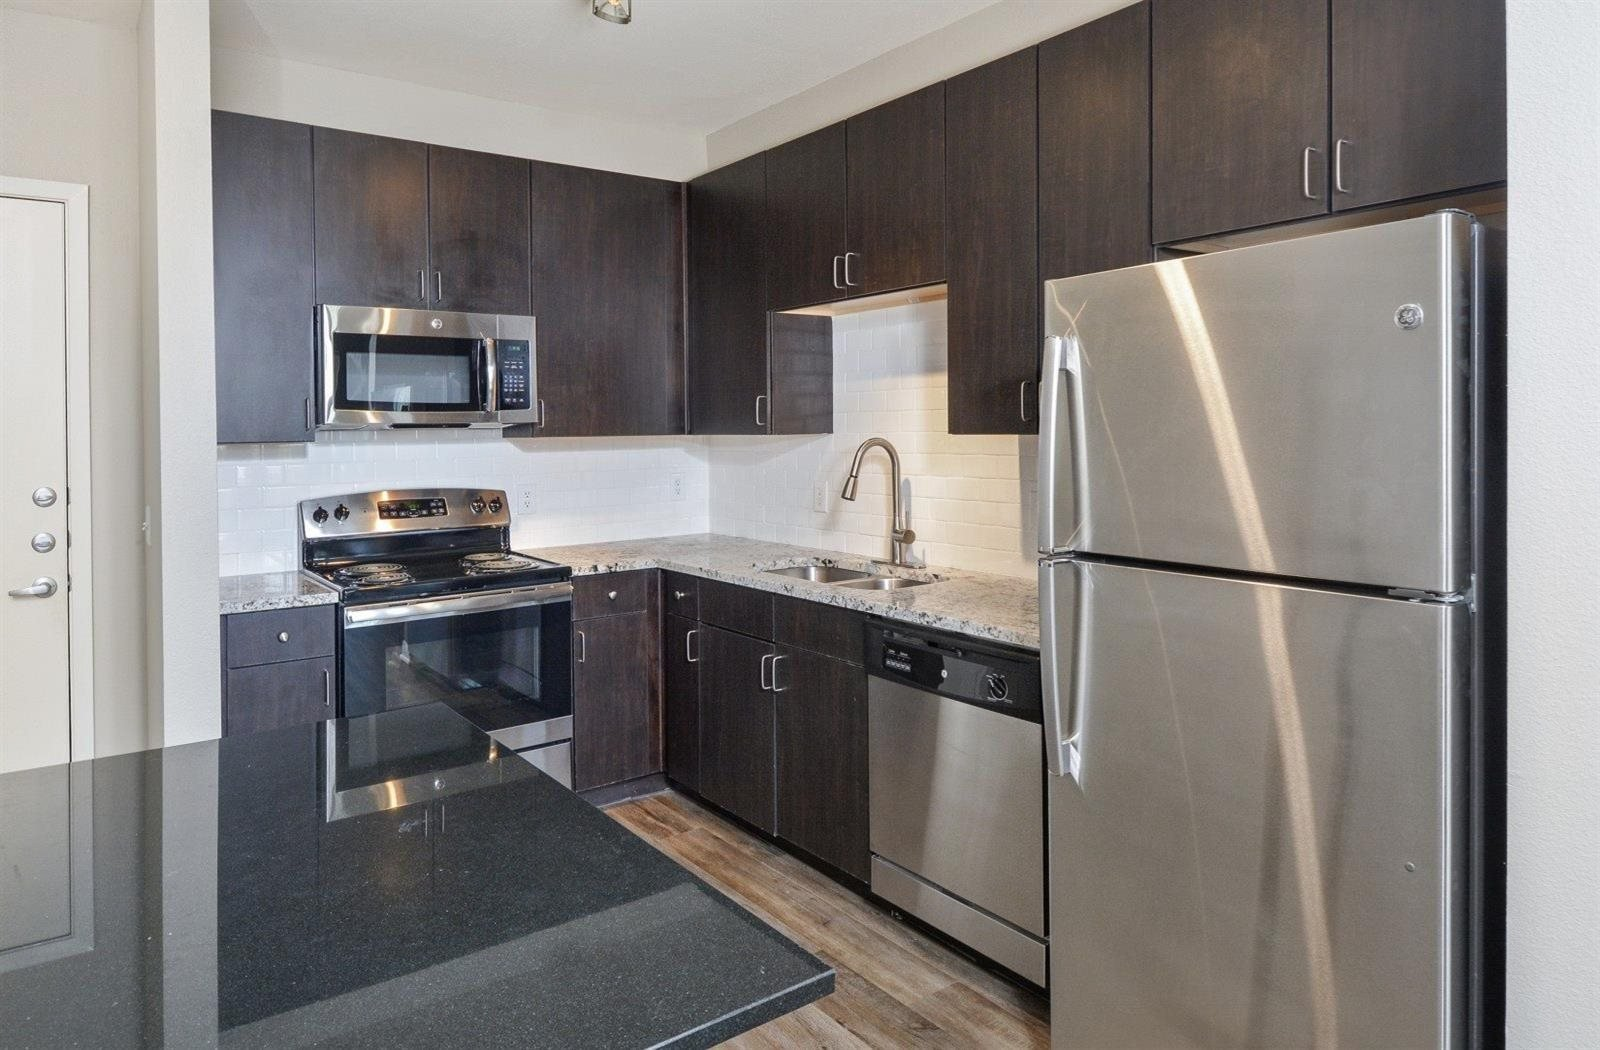 kitchen with cleansteel appliances | Parkside at Firewheel Apartments in Garland, TX